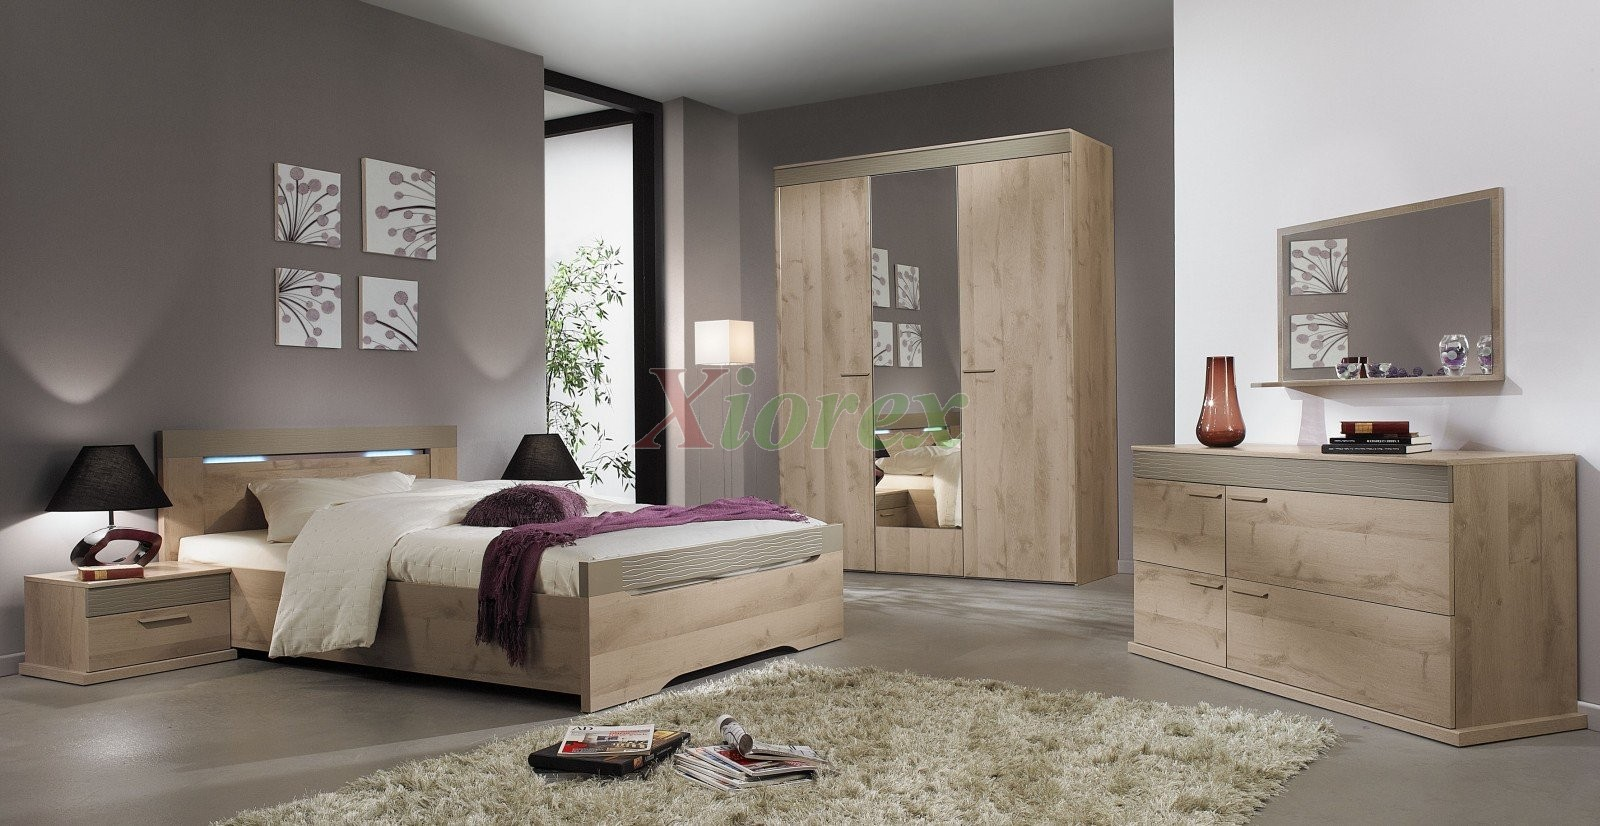 master bed perla gami master bed sets oak plum effect. Black Bedroom Furniture Sets. Home Design Ideas